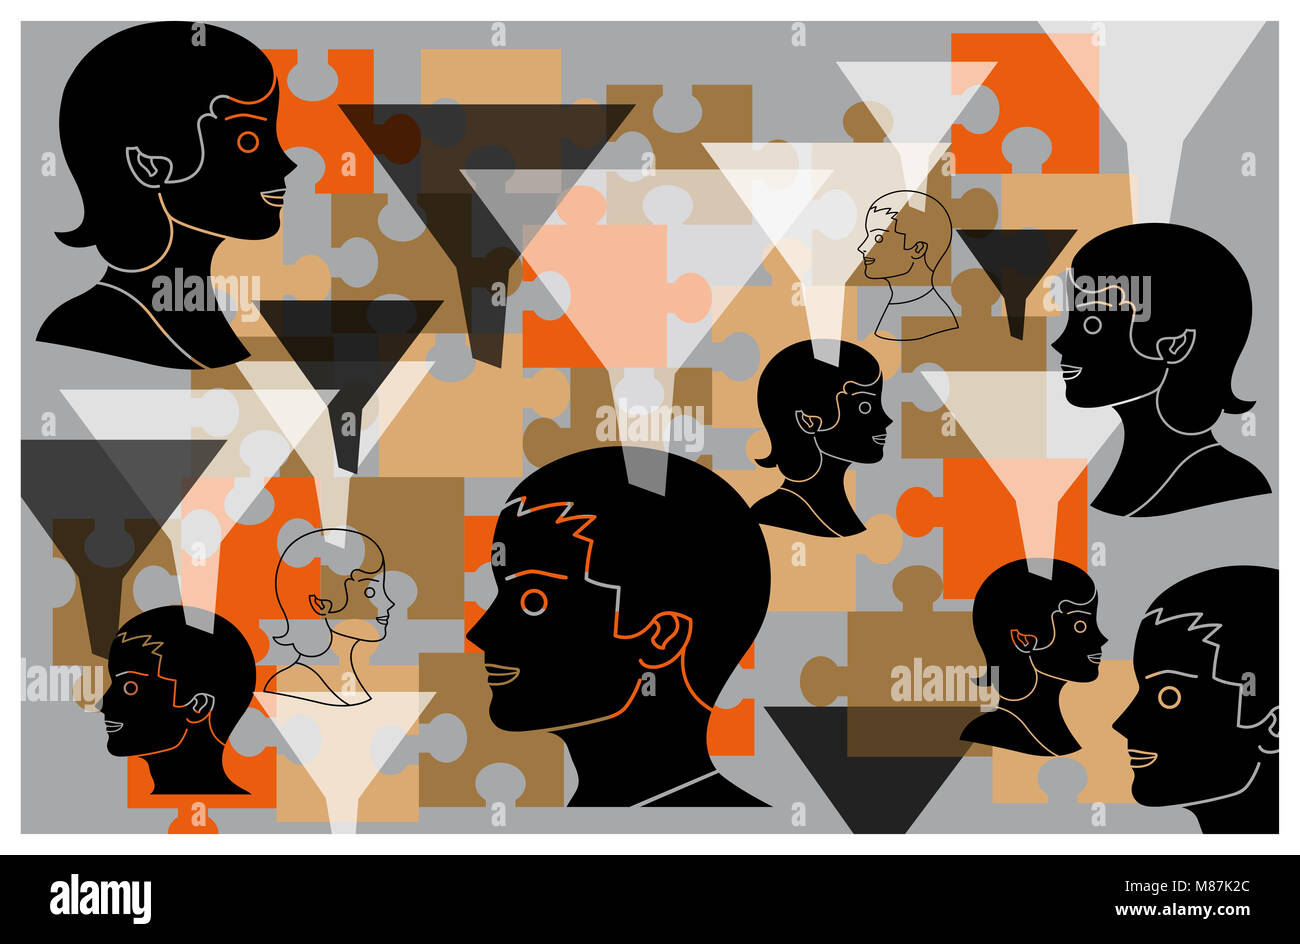 Heads, puzzle pieces and funnels - Stock Image